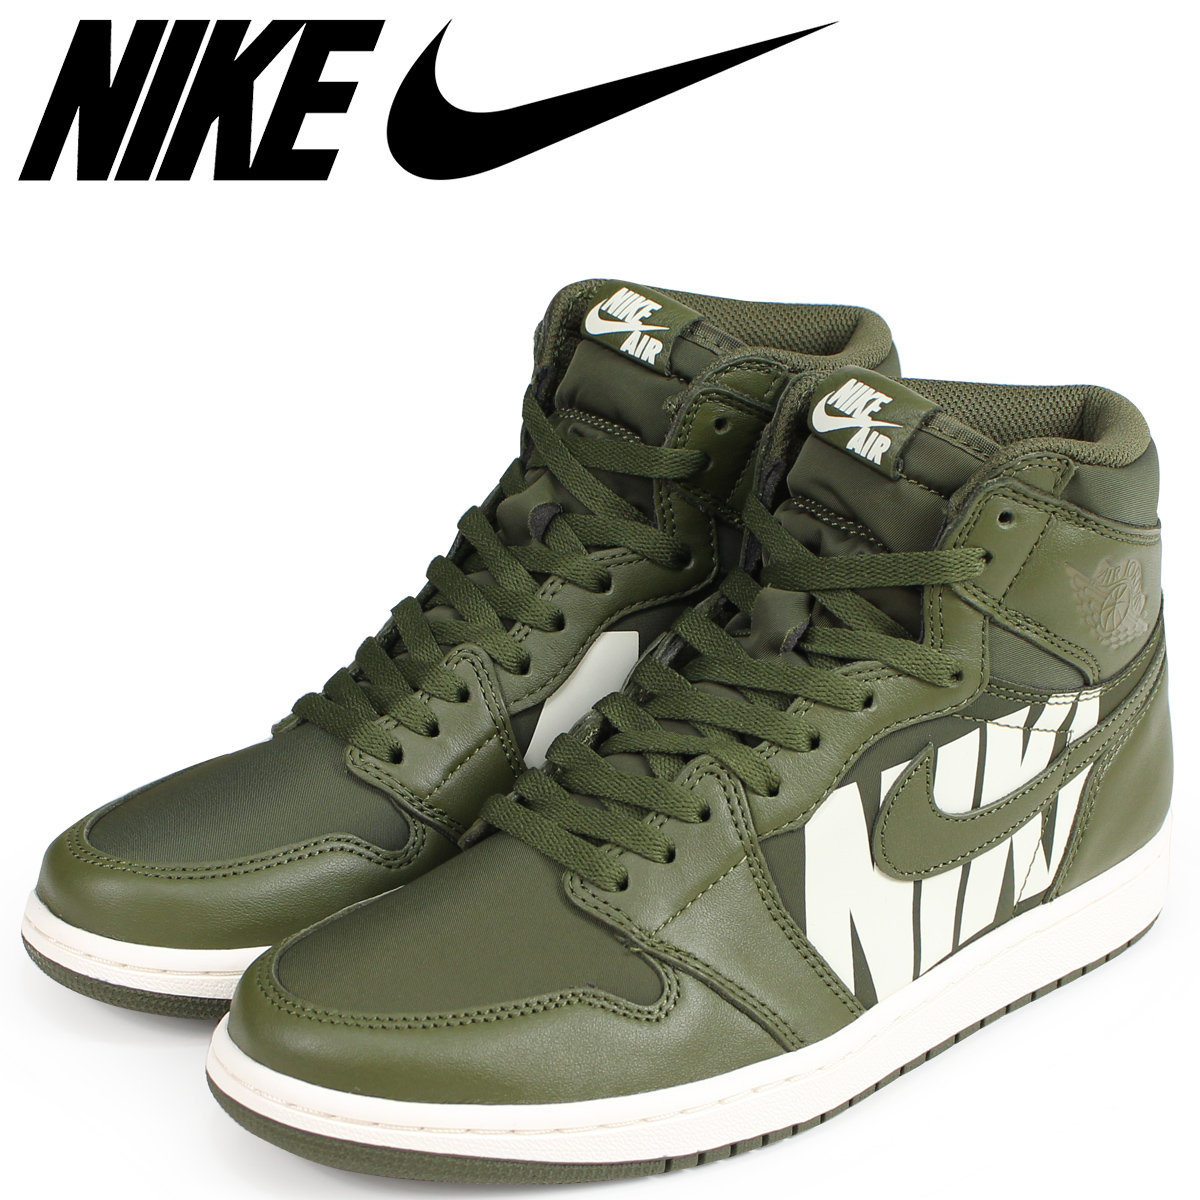 competitive price d3d57 0a01a NIKE Nike Air Jordan 1 nostalgic high sneakers men AIR JORDAN 1 RETRO HIGH  OG 555,088-300 olive  load planned Shinnyu load in reservation product 9 11  ...